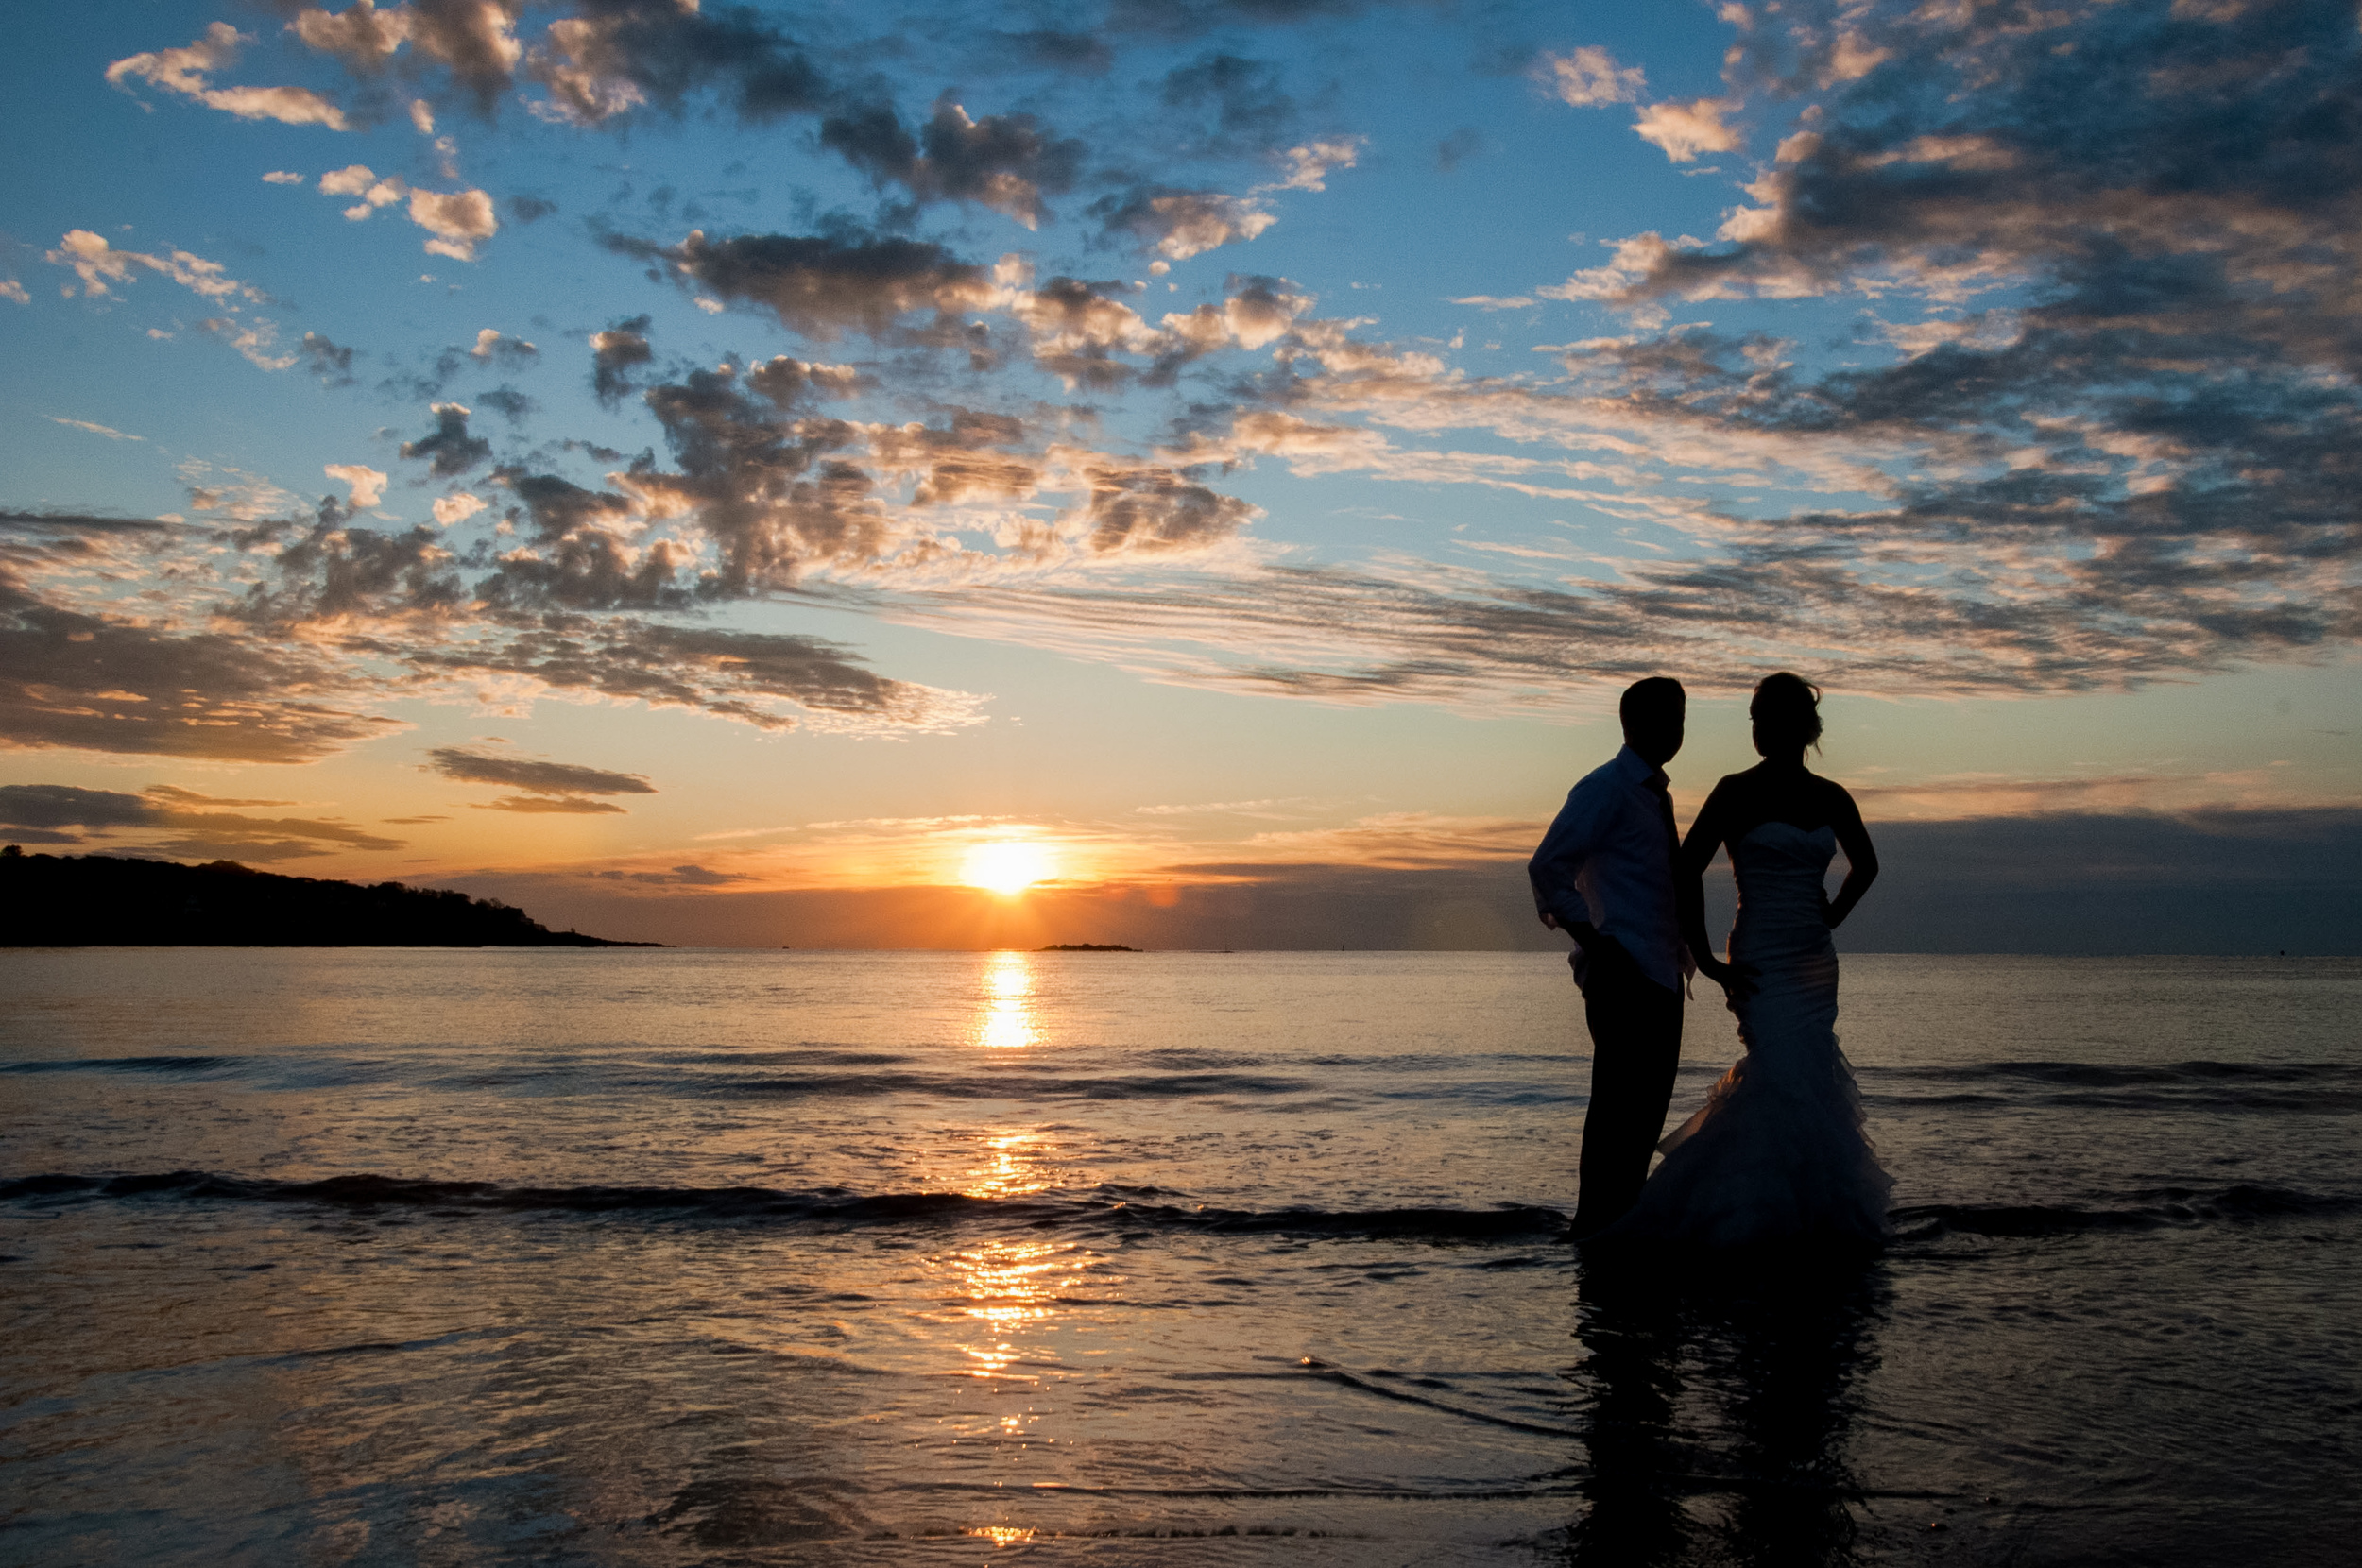 """One of my best friends letting me photograph her """"trash the dress"""" at 6am the morning after her wedding day to support my (at the time) ridiculous dream of being a photographer - September 2011 in York, Maine"""